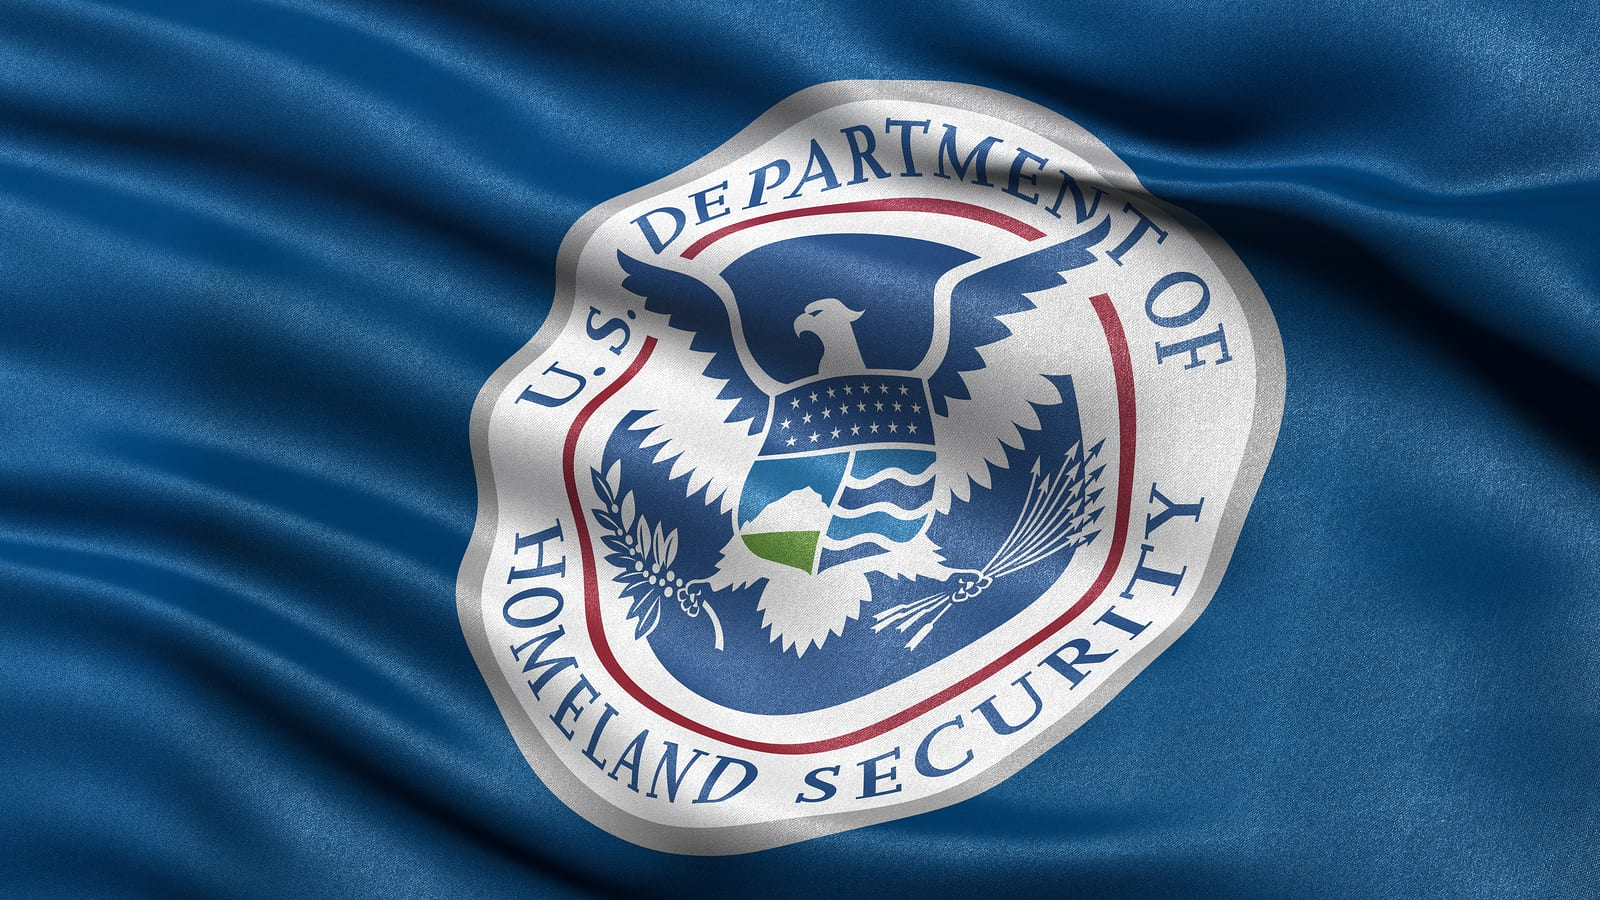 US Department of Homeland Security News: A New DHS for a New Age